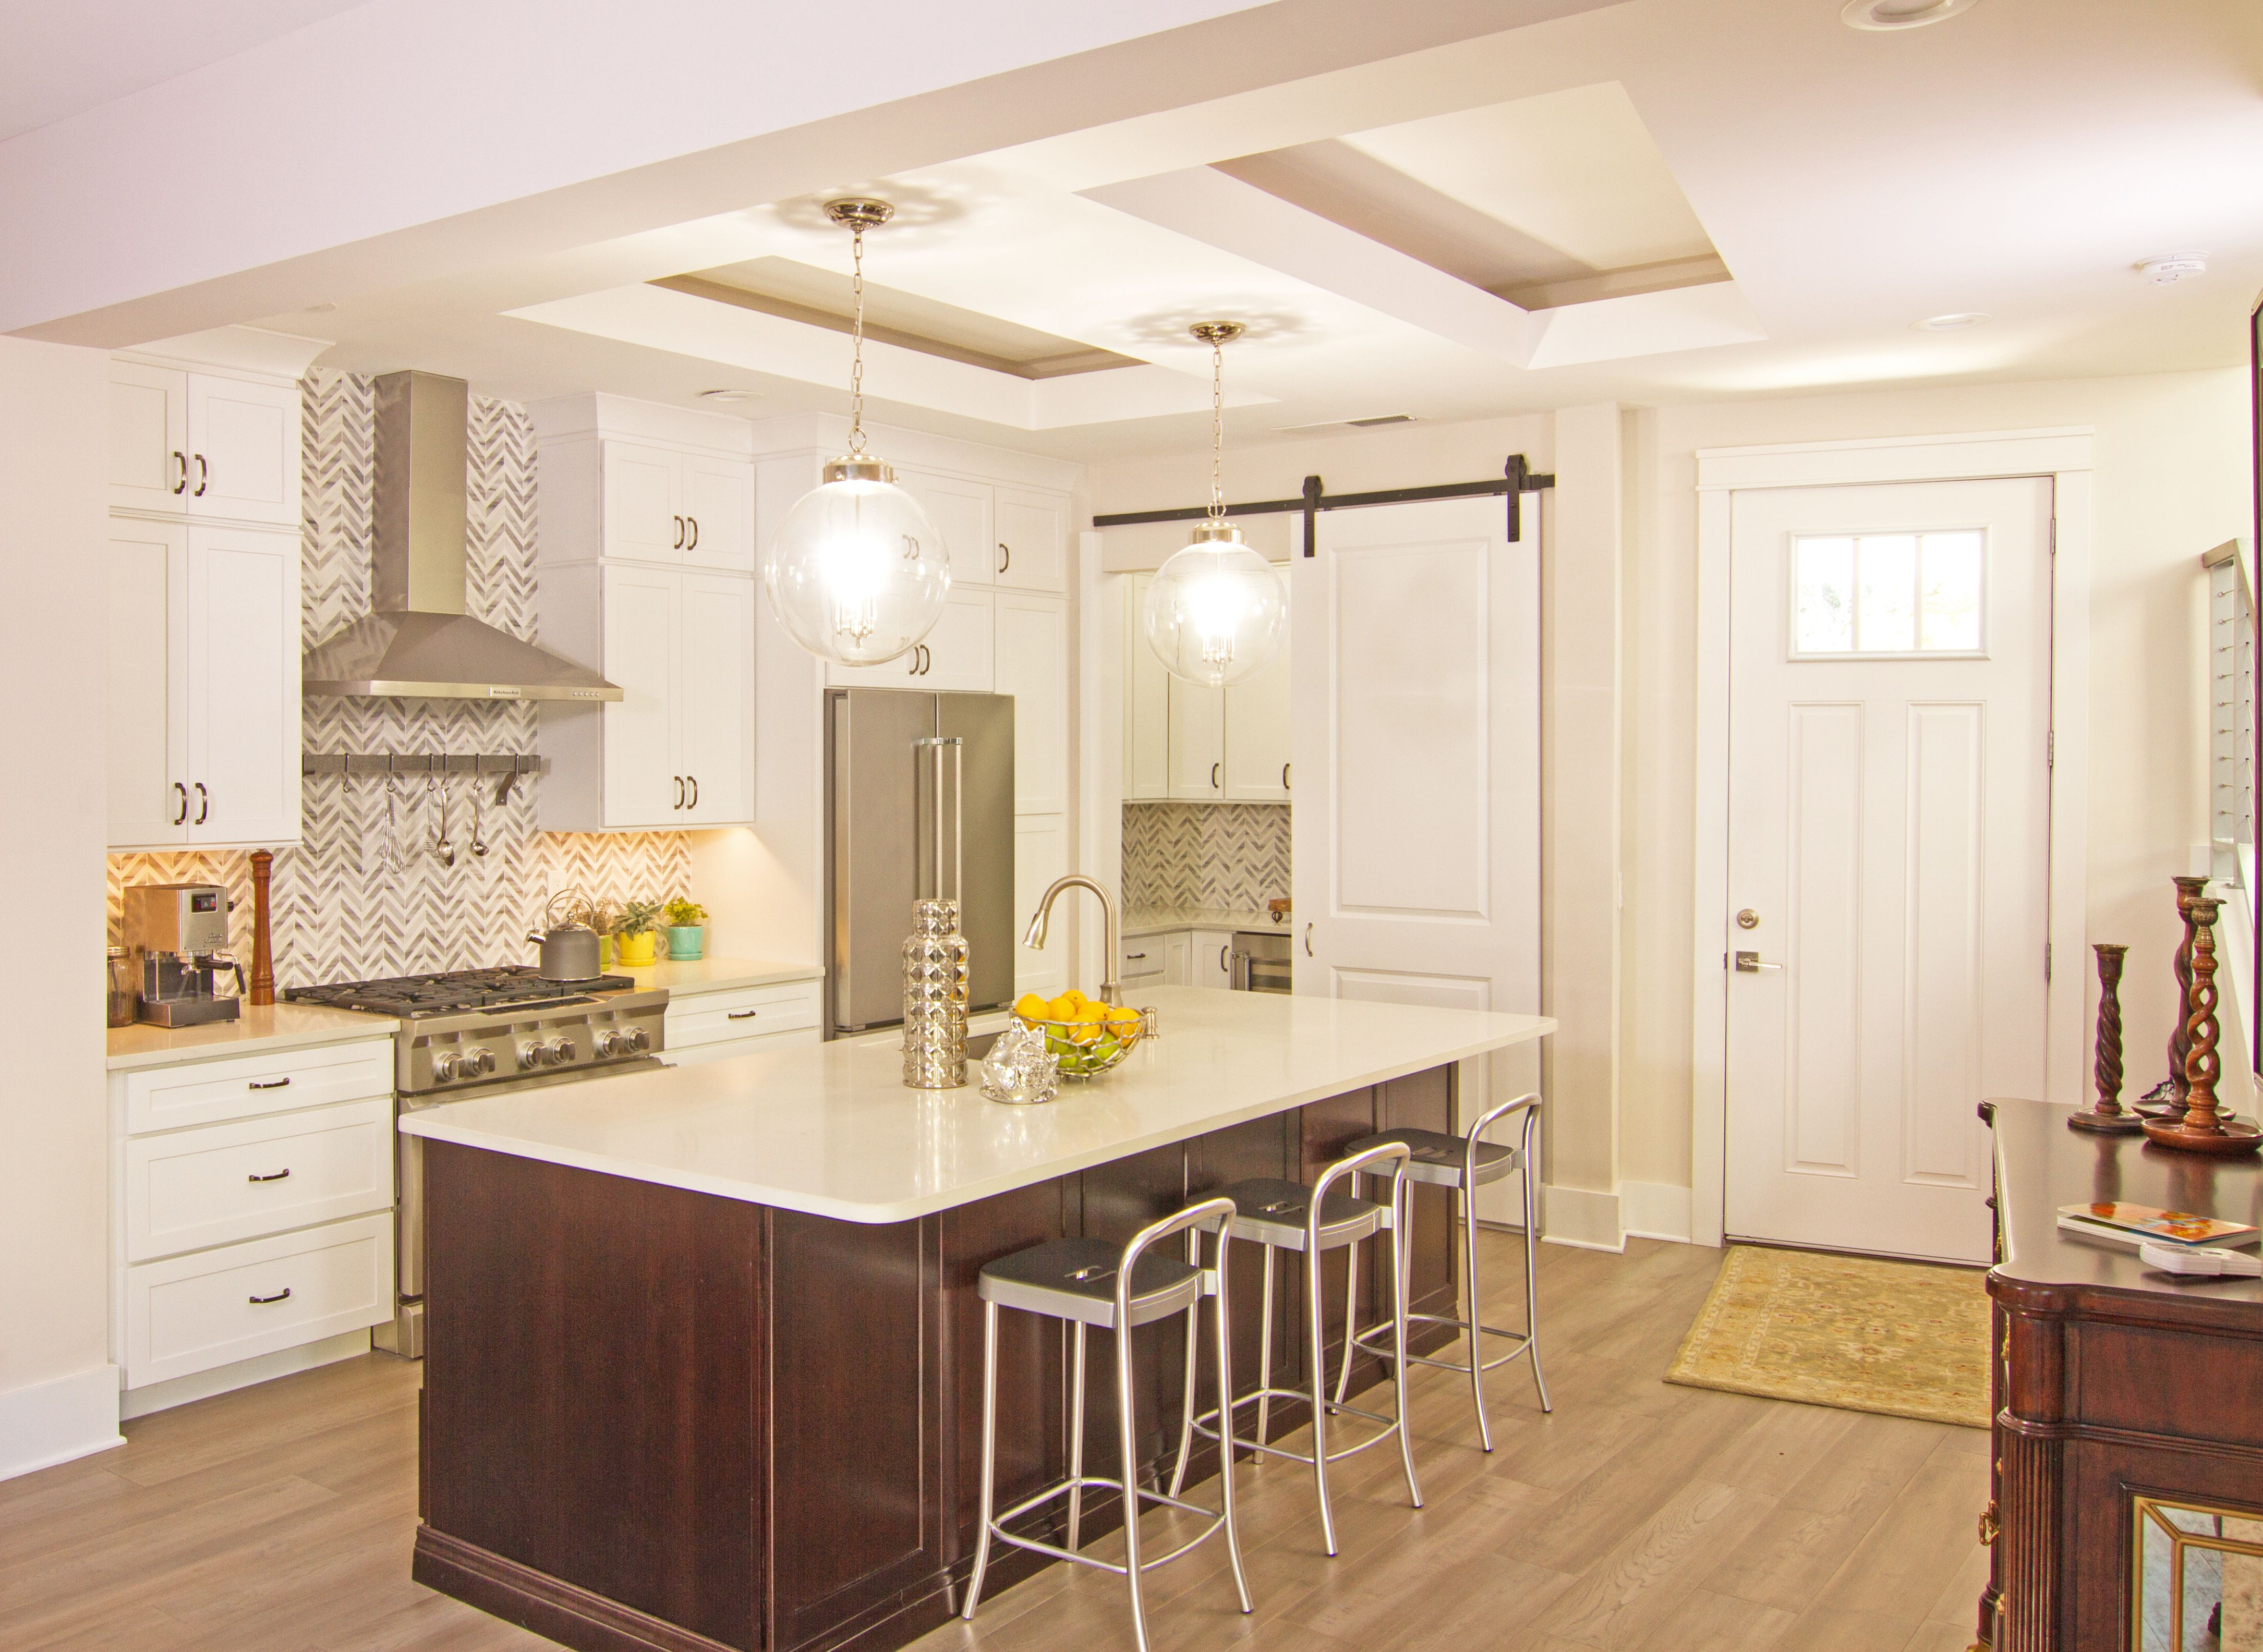 Pin By Mccabinet Inc On Mccabinet Mcprojects Kitchen Nook Lighting Custom Cabinets Kitchen Nook